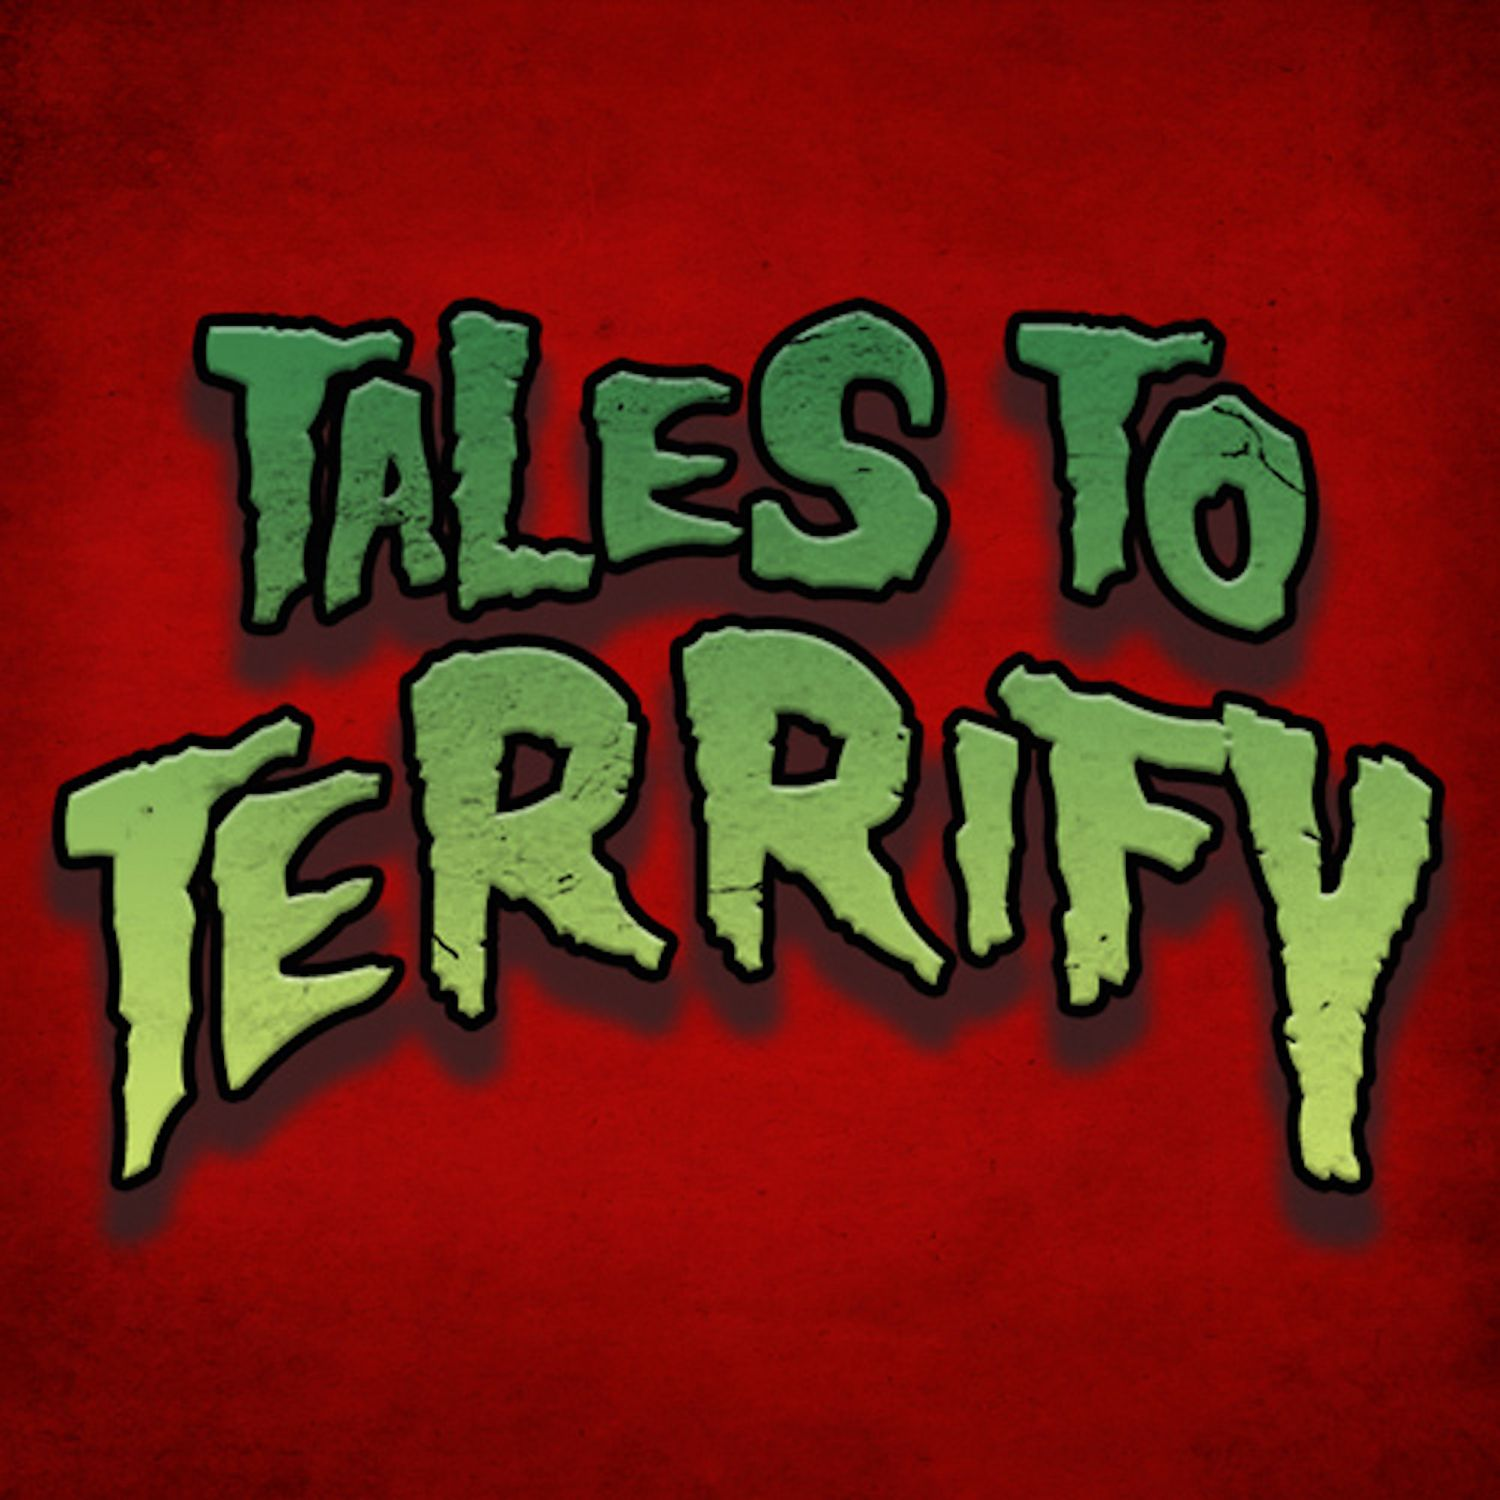 Tales to Terrify 349 Liam Hogan Mercedes Yardley